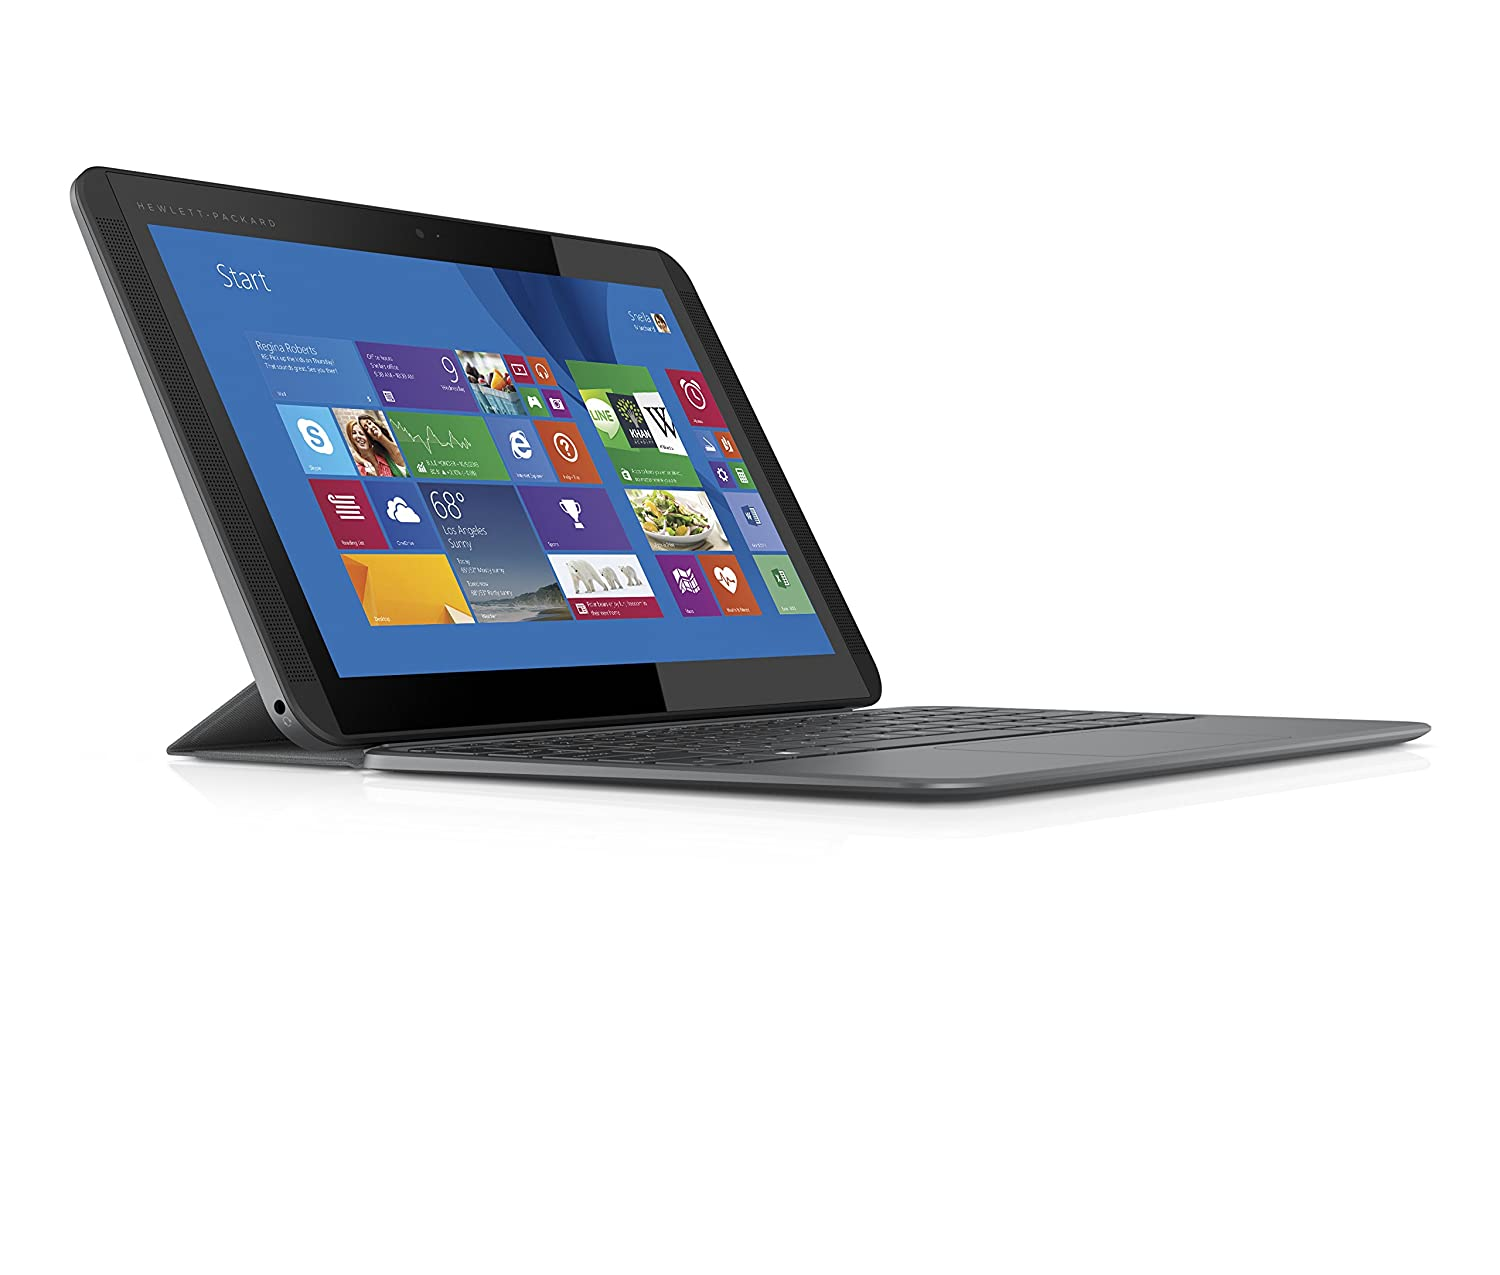 Hp notebook x64-based pc - Amazon Com Hp Pavilion X2 10 1 Inch Detachable 2 In 1 Laptop 32gb Includes Office 365 Personal For 1 Year Computers Accessories